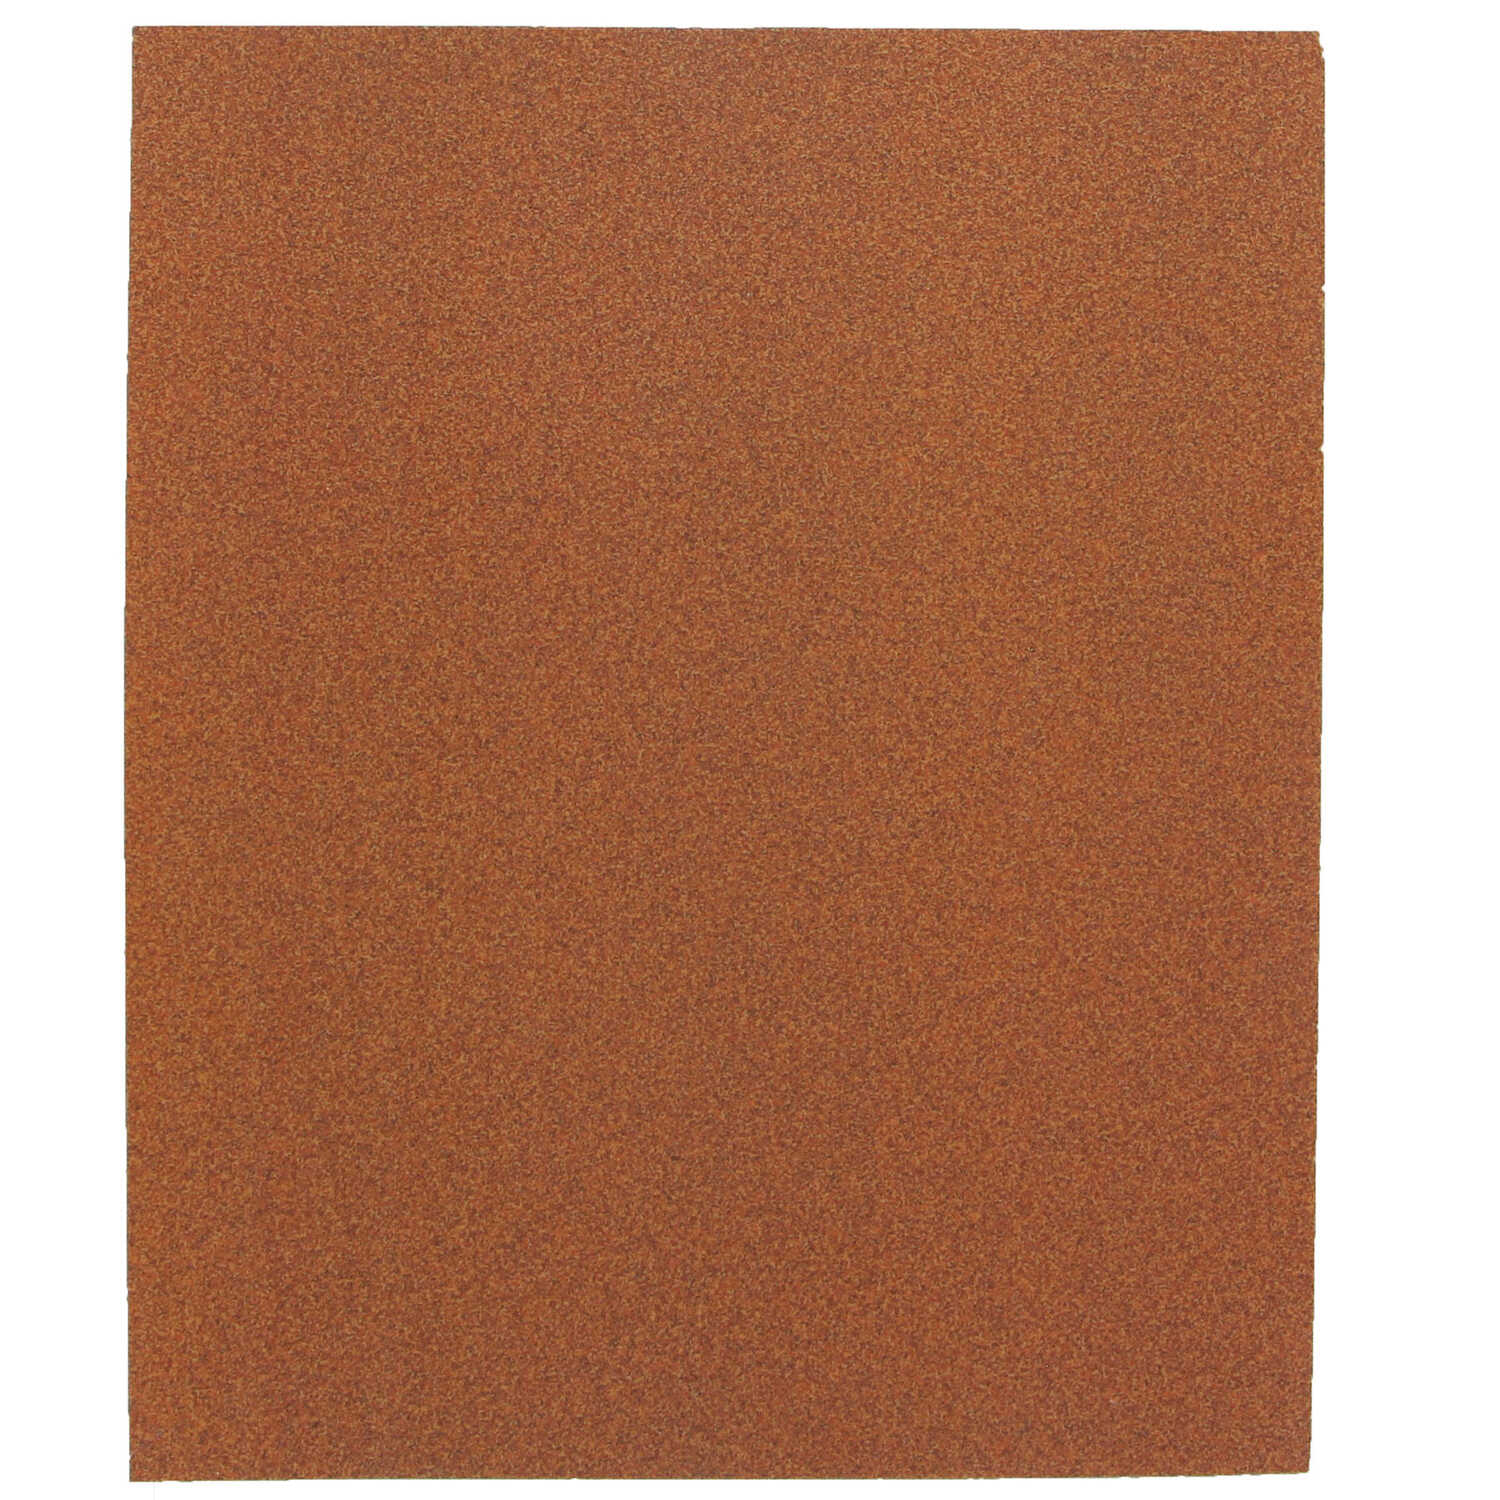 Gator  11 in. L x 9 in. W 100 Grit Medium  Aluminum Oxide  Sandpaper  1 sheet